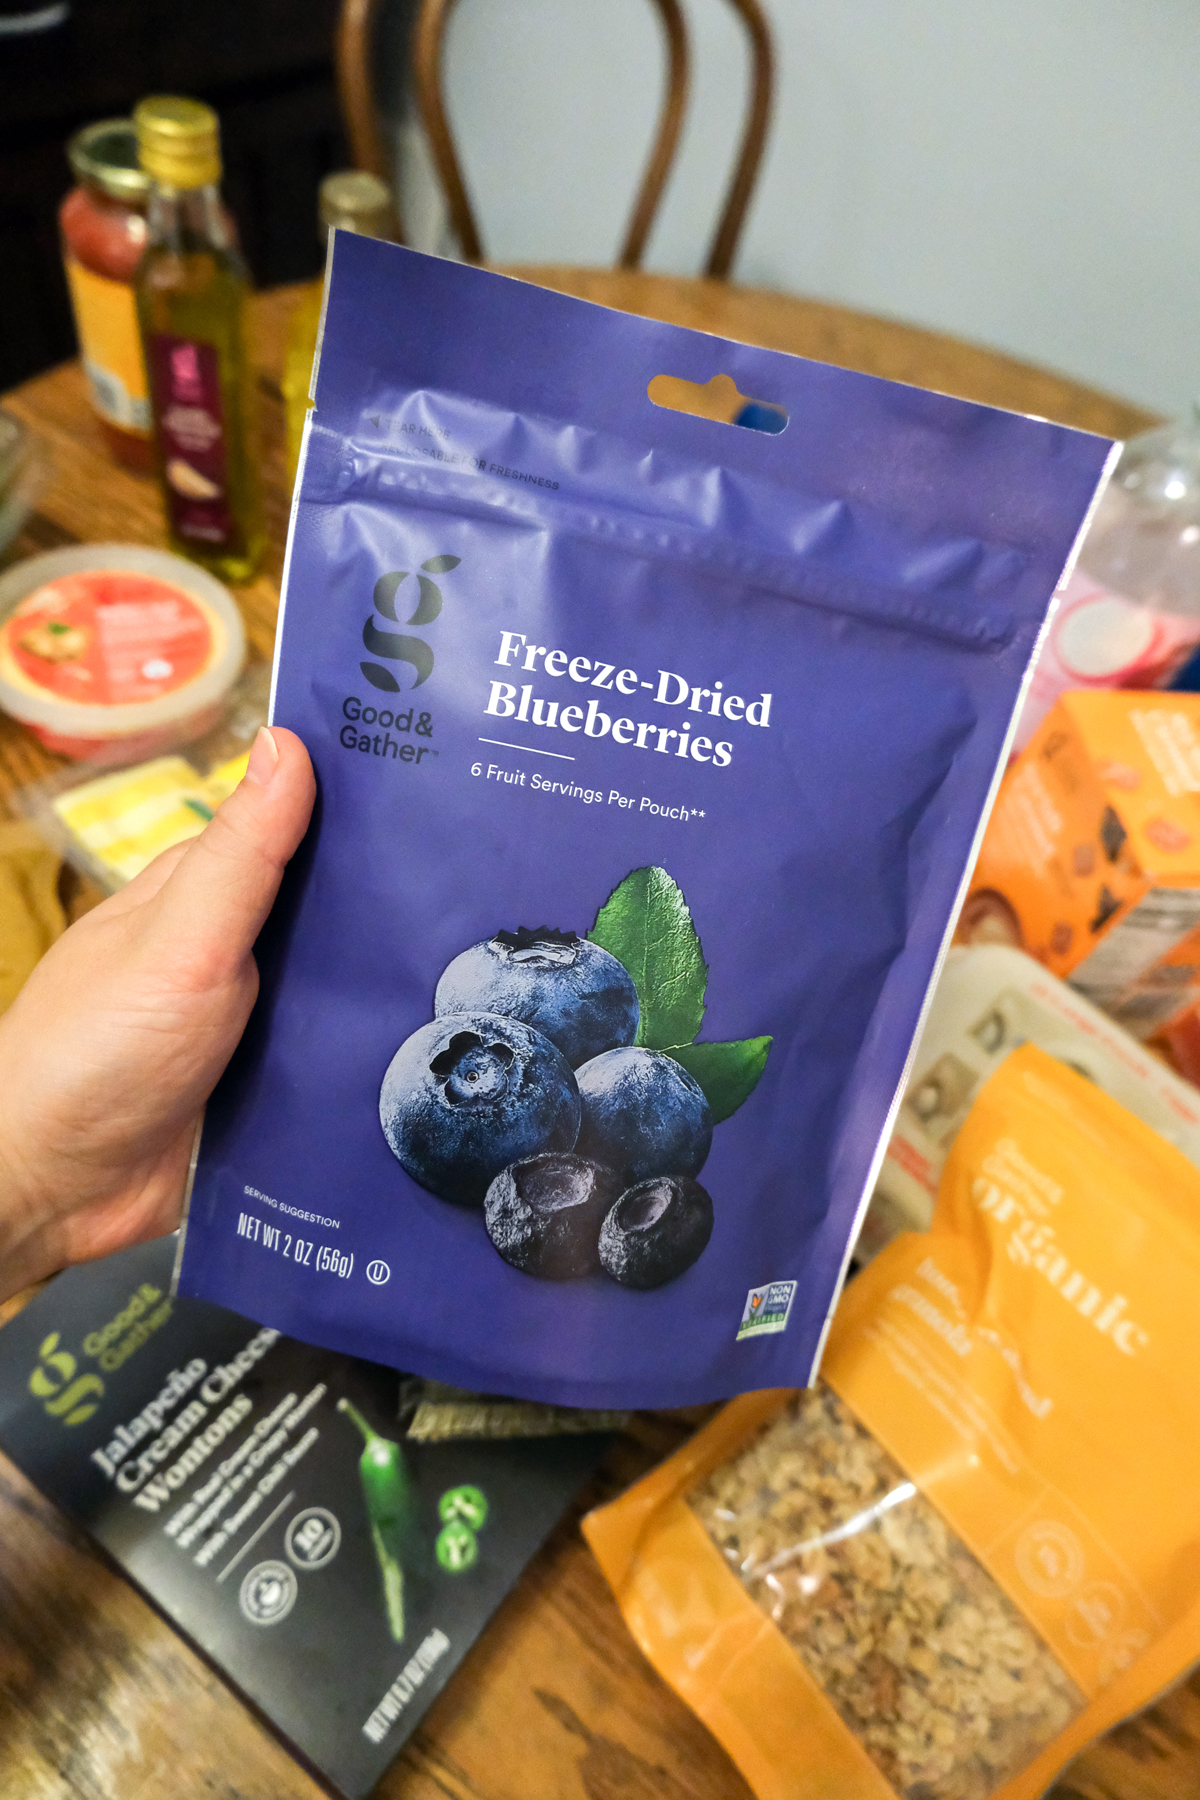 freeze dried blueberries Good & Gather from Target